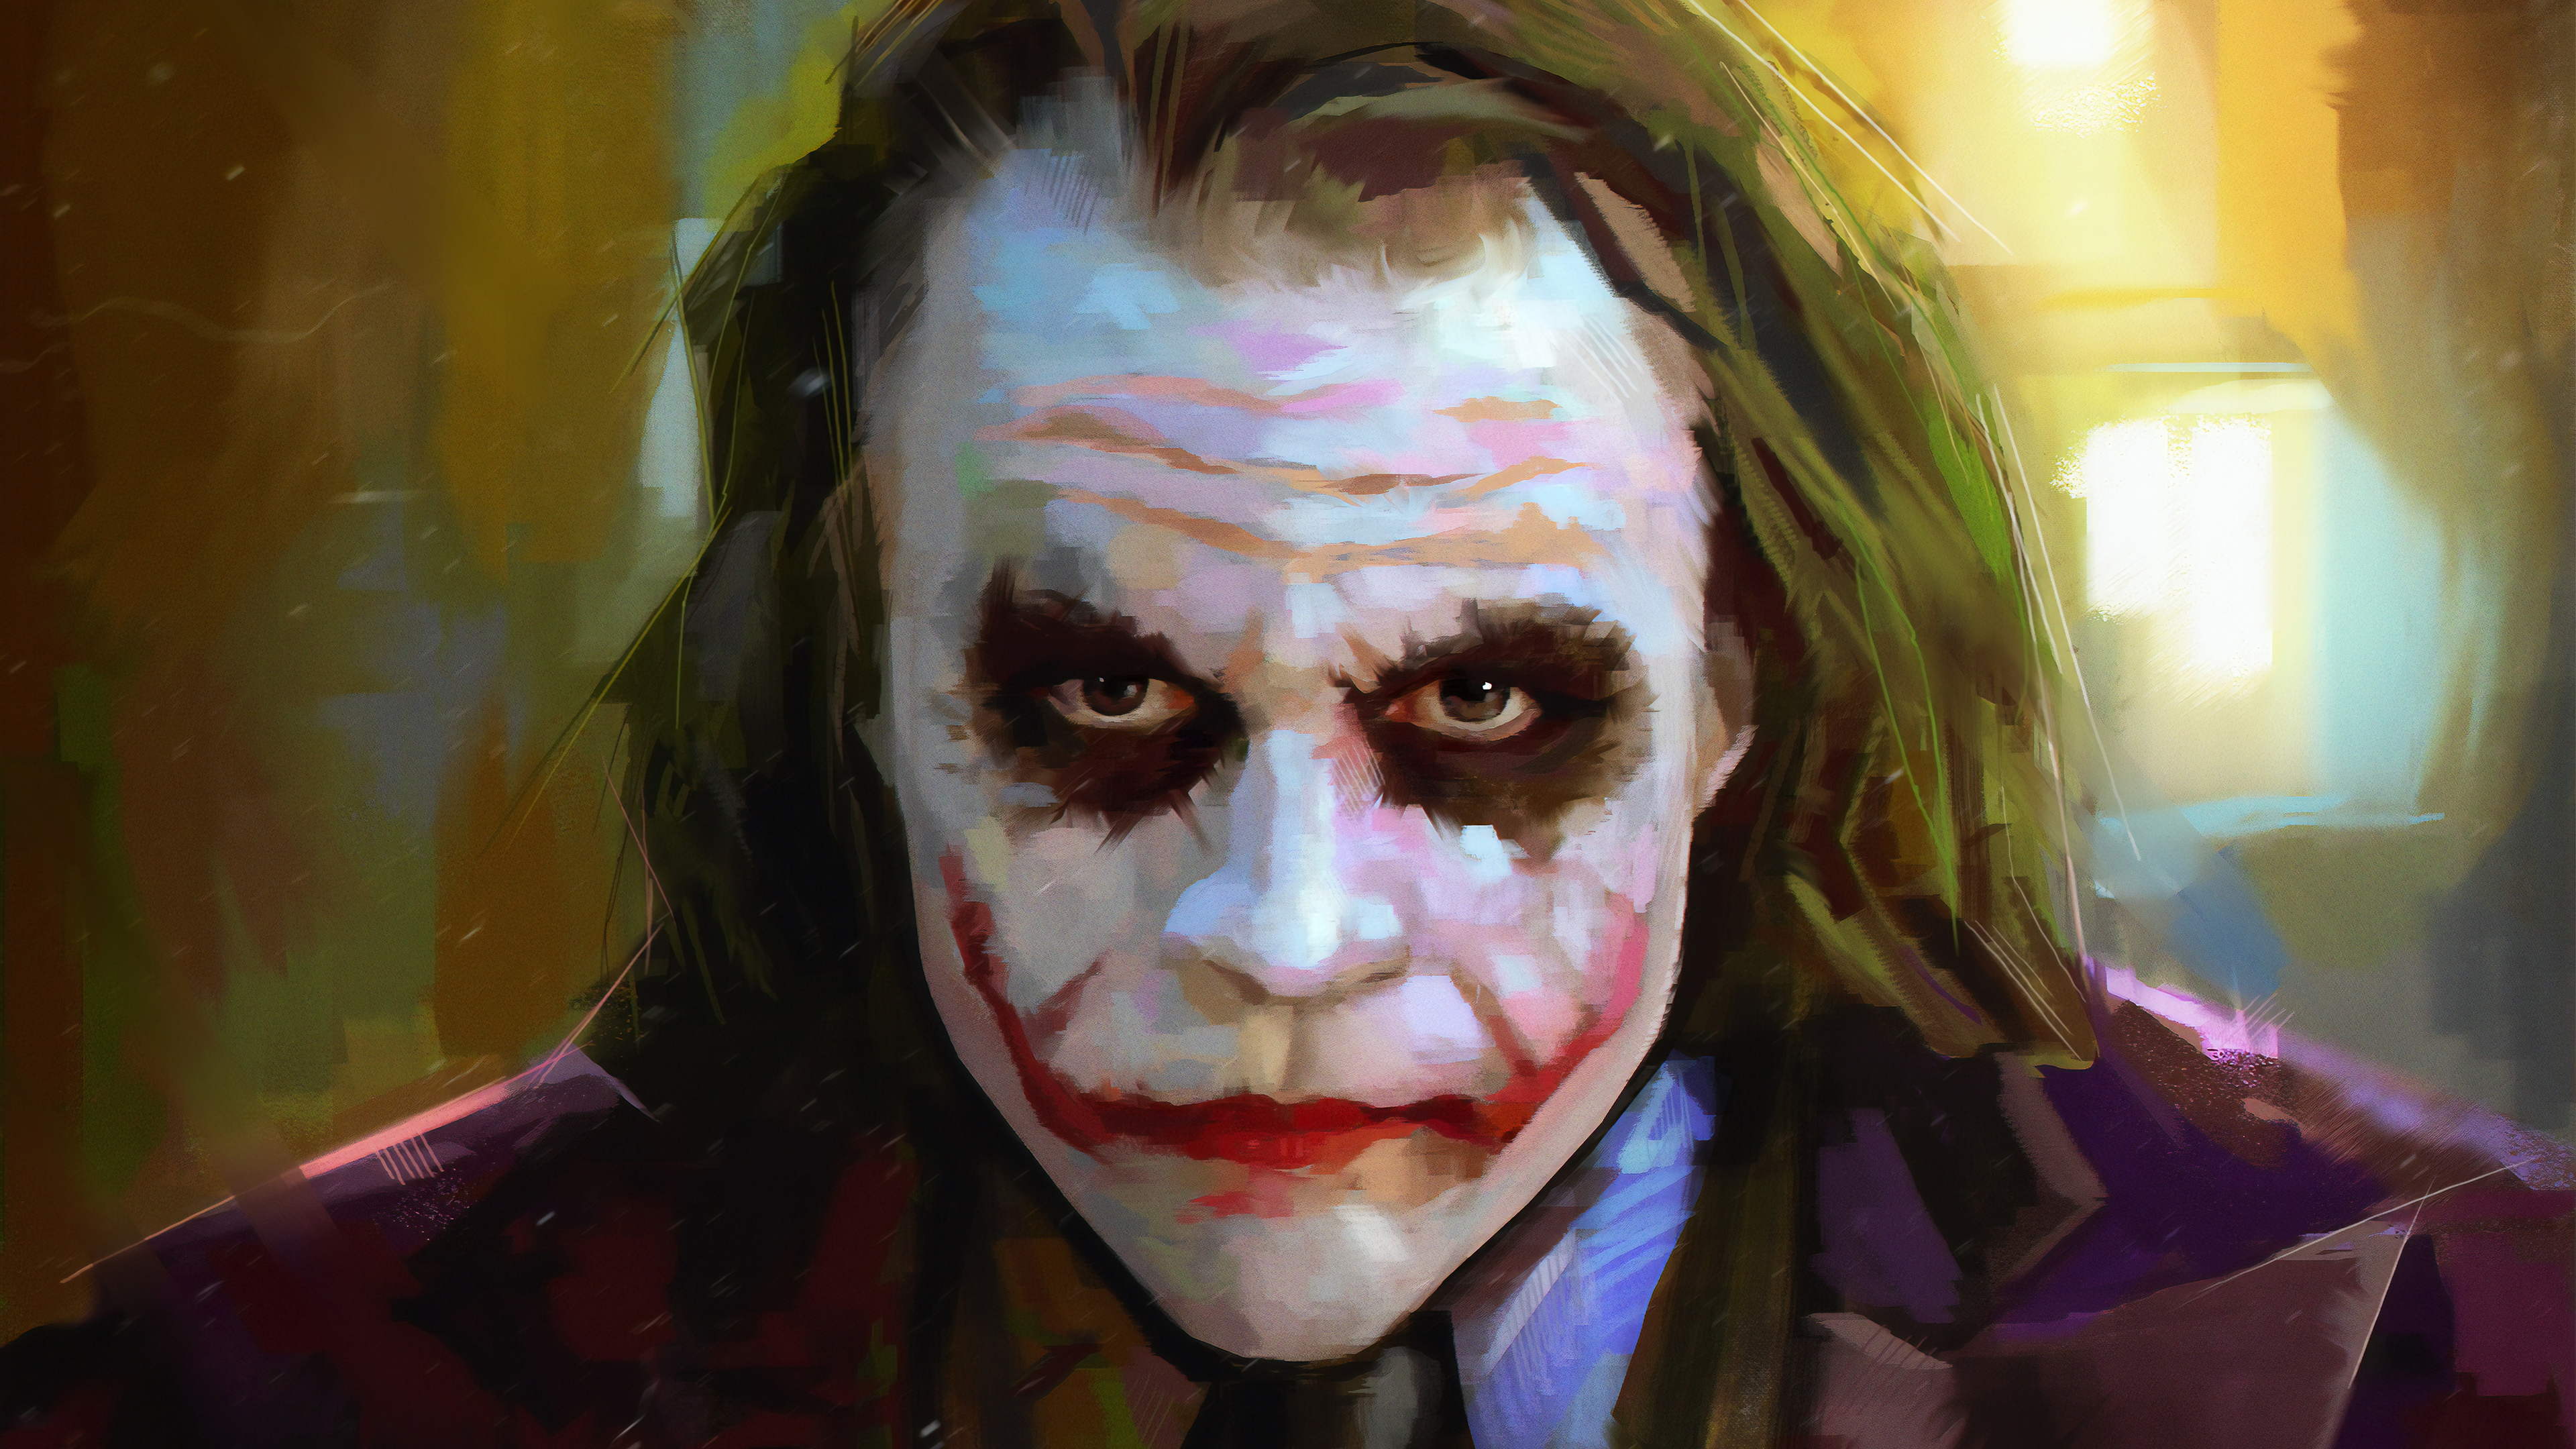 heath ledger as joker 1570394682 - Heath Ledger As Joker - supervillain wallpapers, superheroes wallpapers, joker wallpapers, hd-wallpapers, deviantart wallpapers, 4k-wallpapers